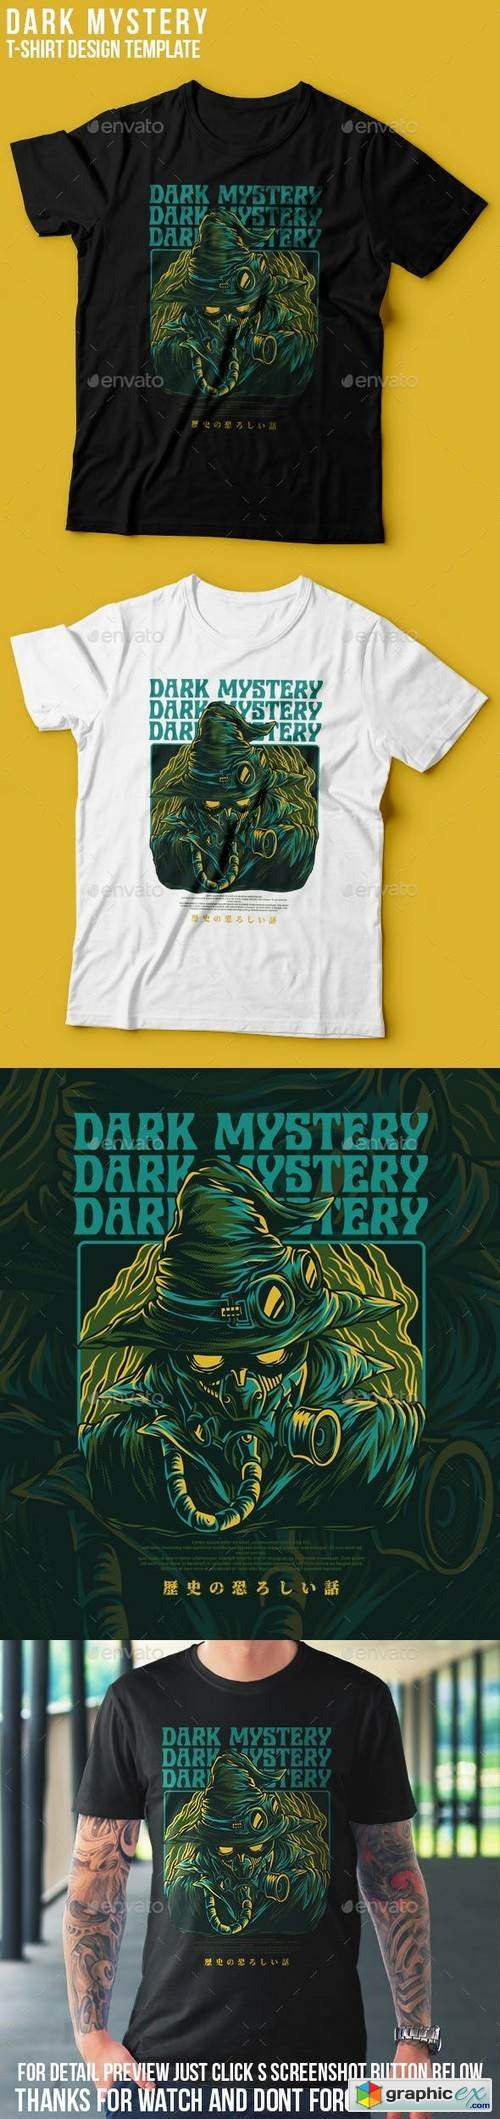 Dark Mystery T-Shirt Design